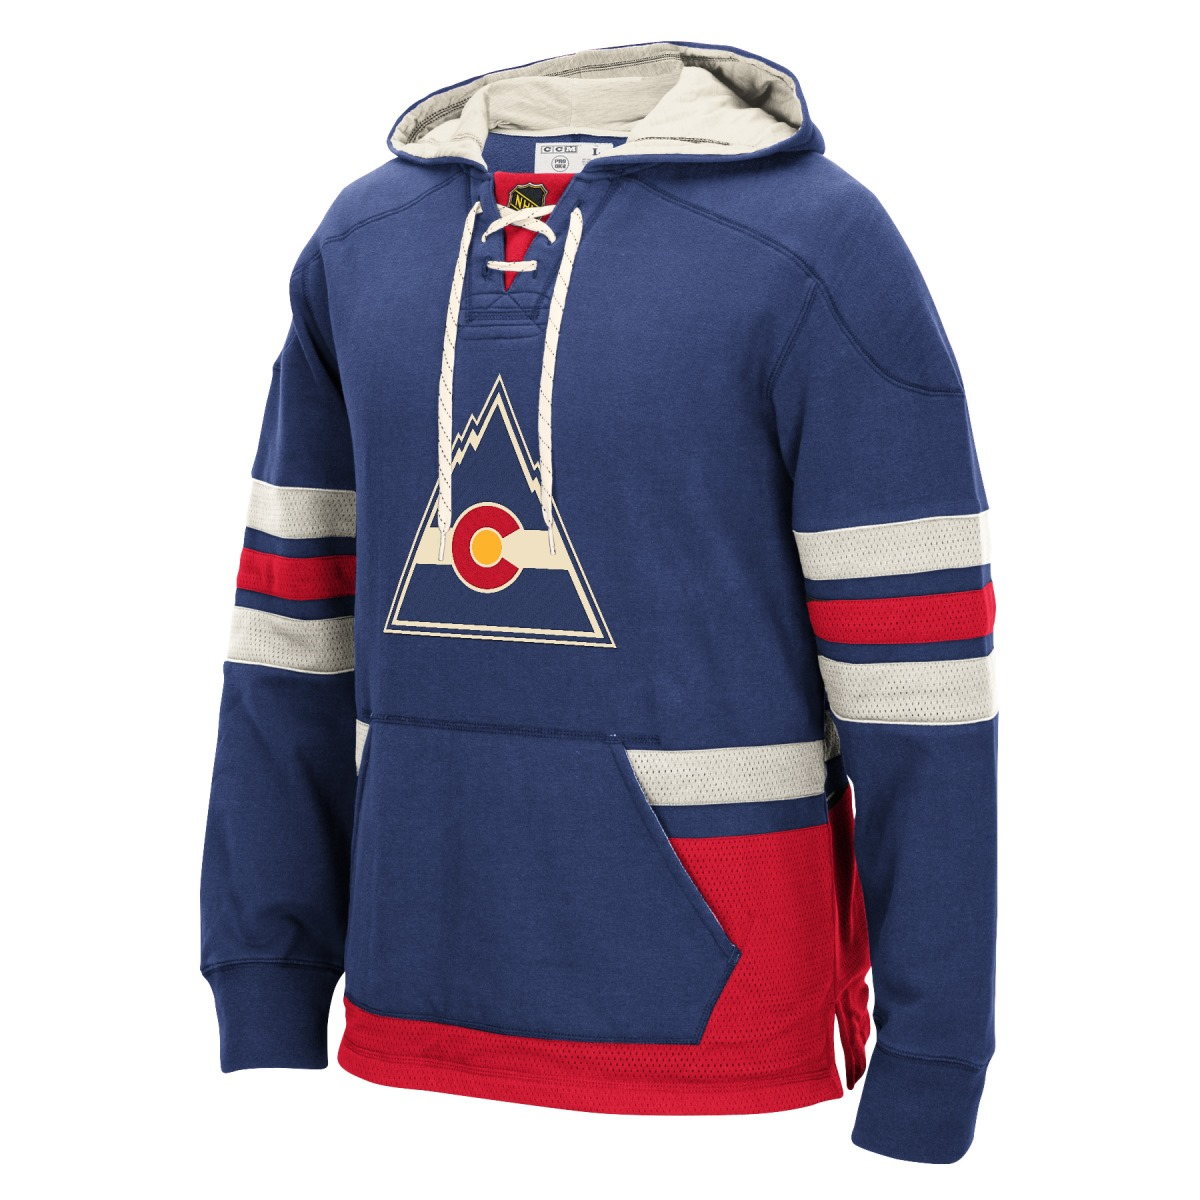 "Colorado Rockies Men's NHL CCM ""Lace Em Up"" Pullover Hooded Sweatshirt - Blue"